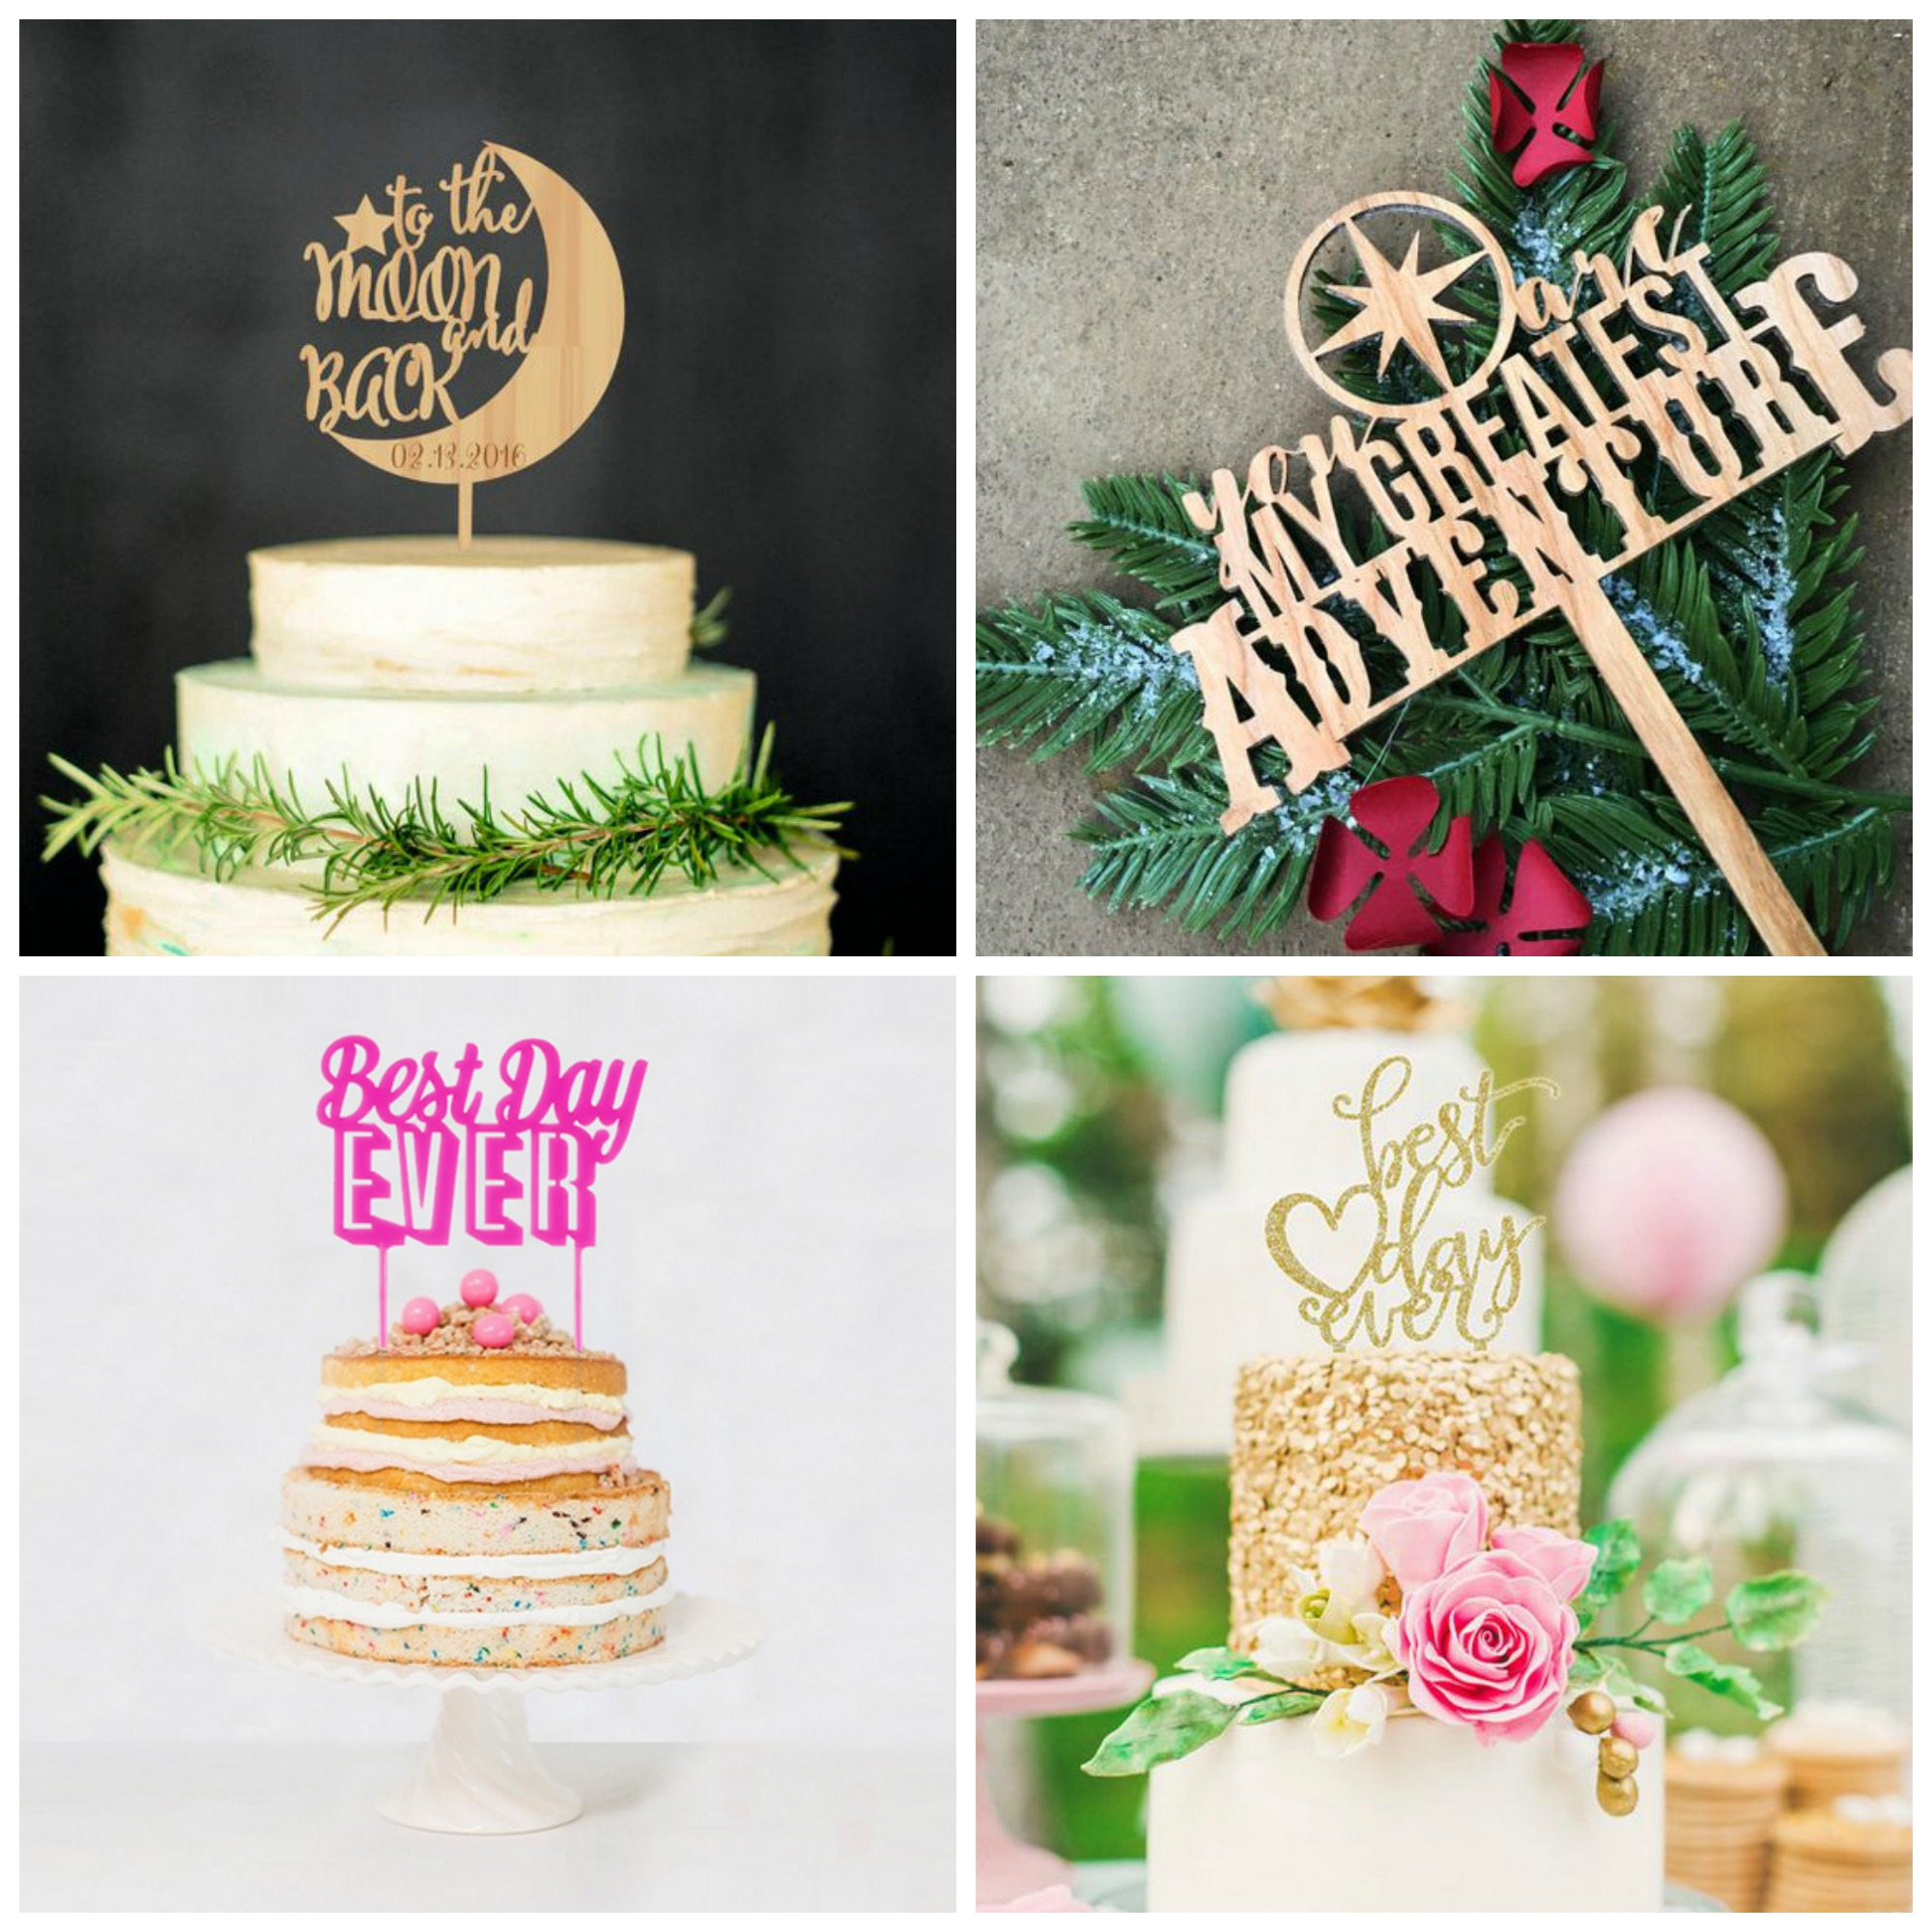 wedding cake topper ideas uk 19 of the cutest wedding cake topper ideas 26339